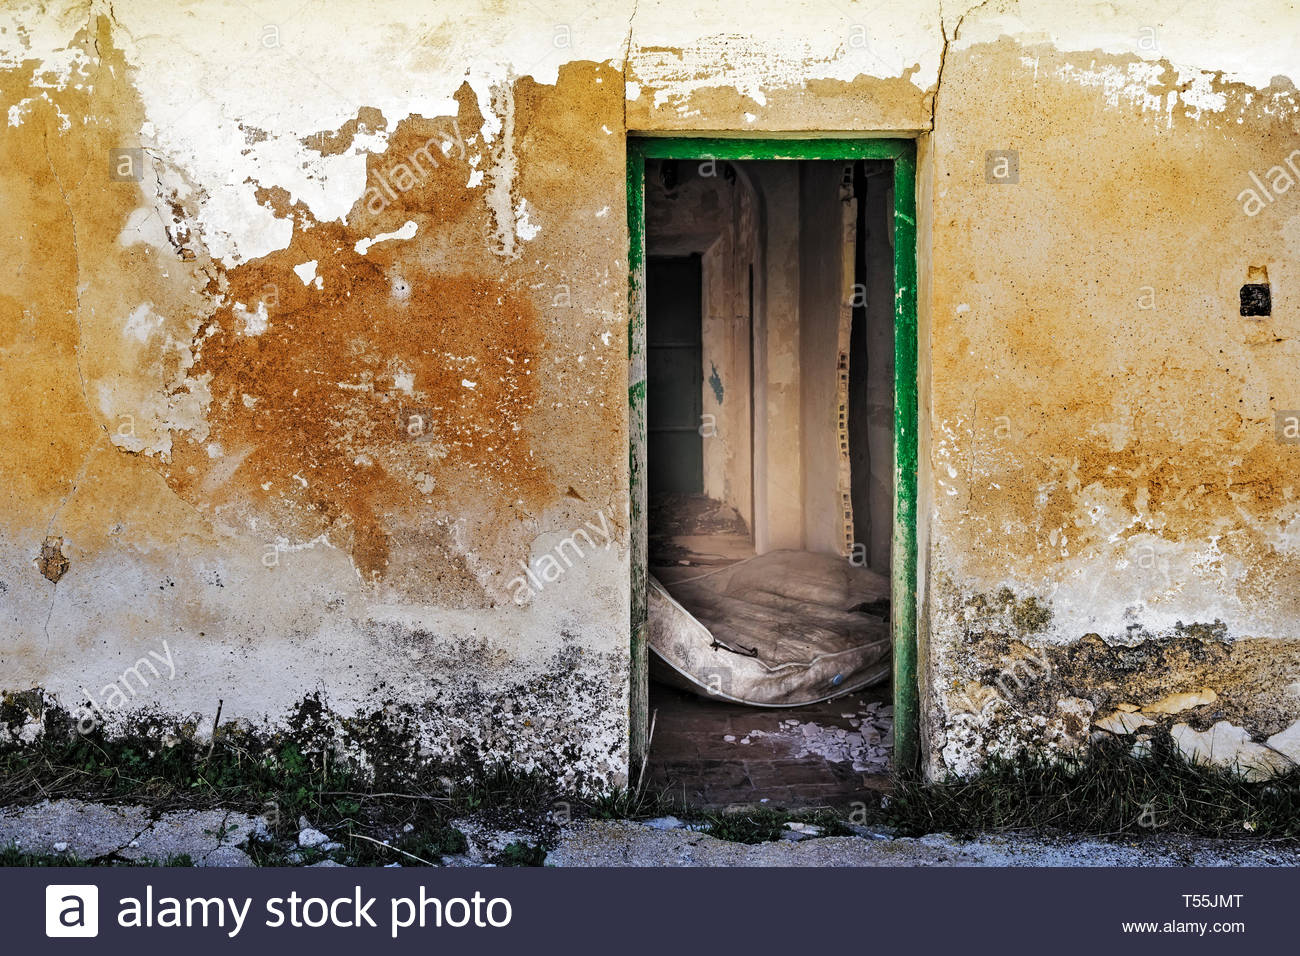 Entrance door to an old abandoned country house - Stock Image